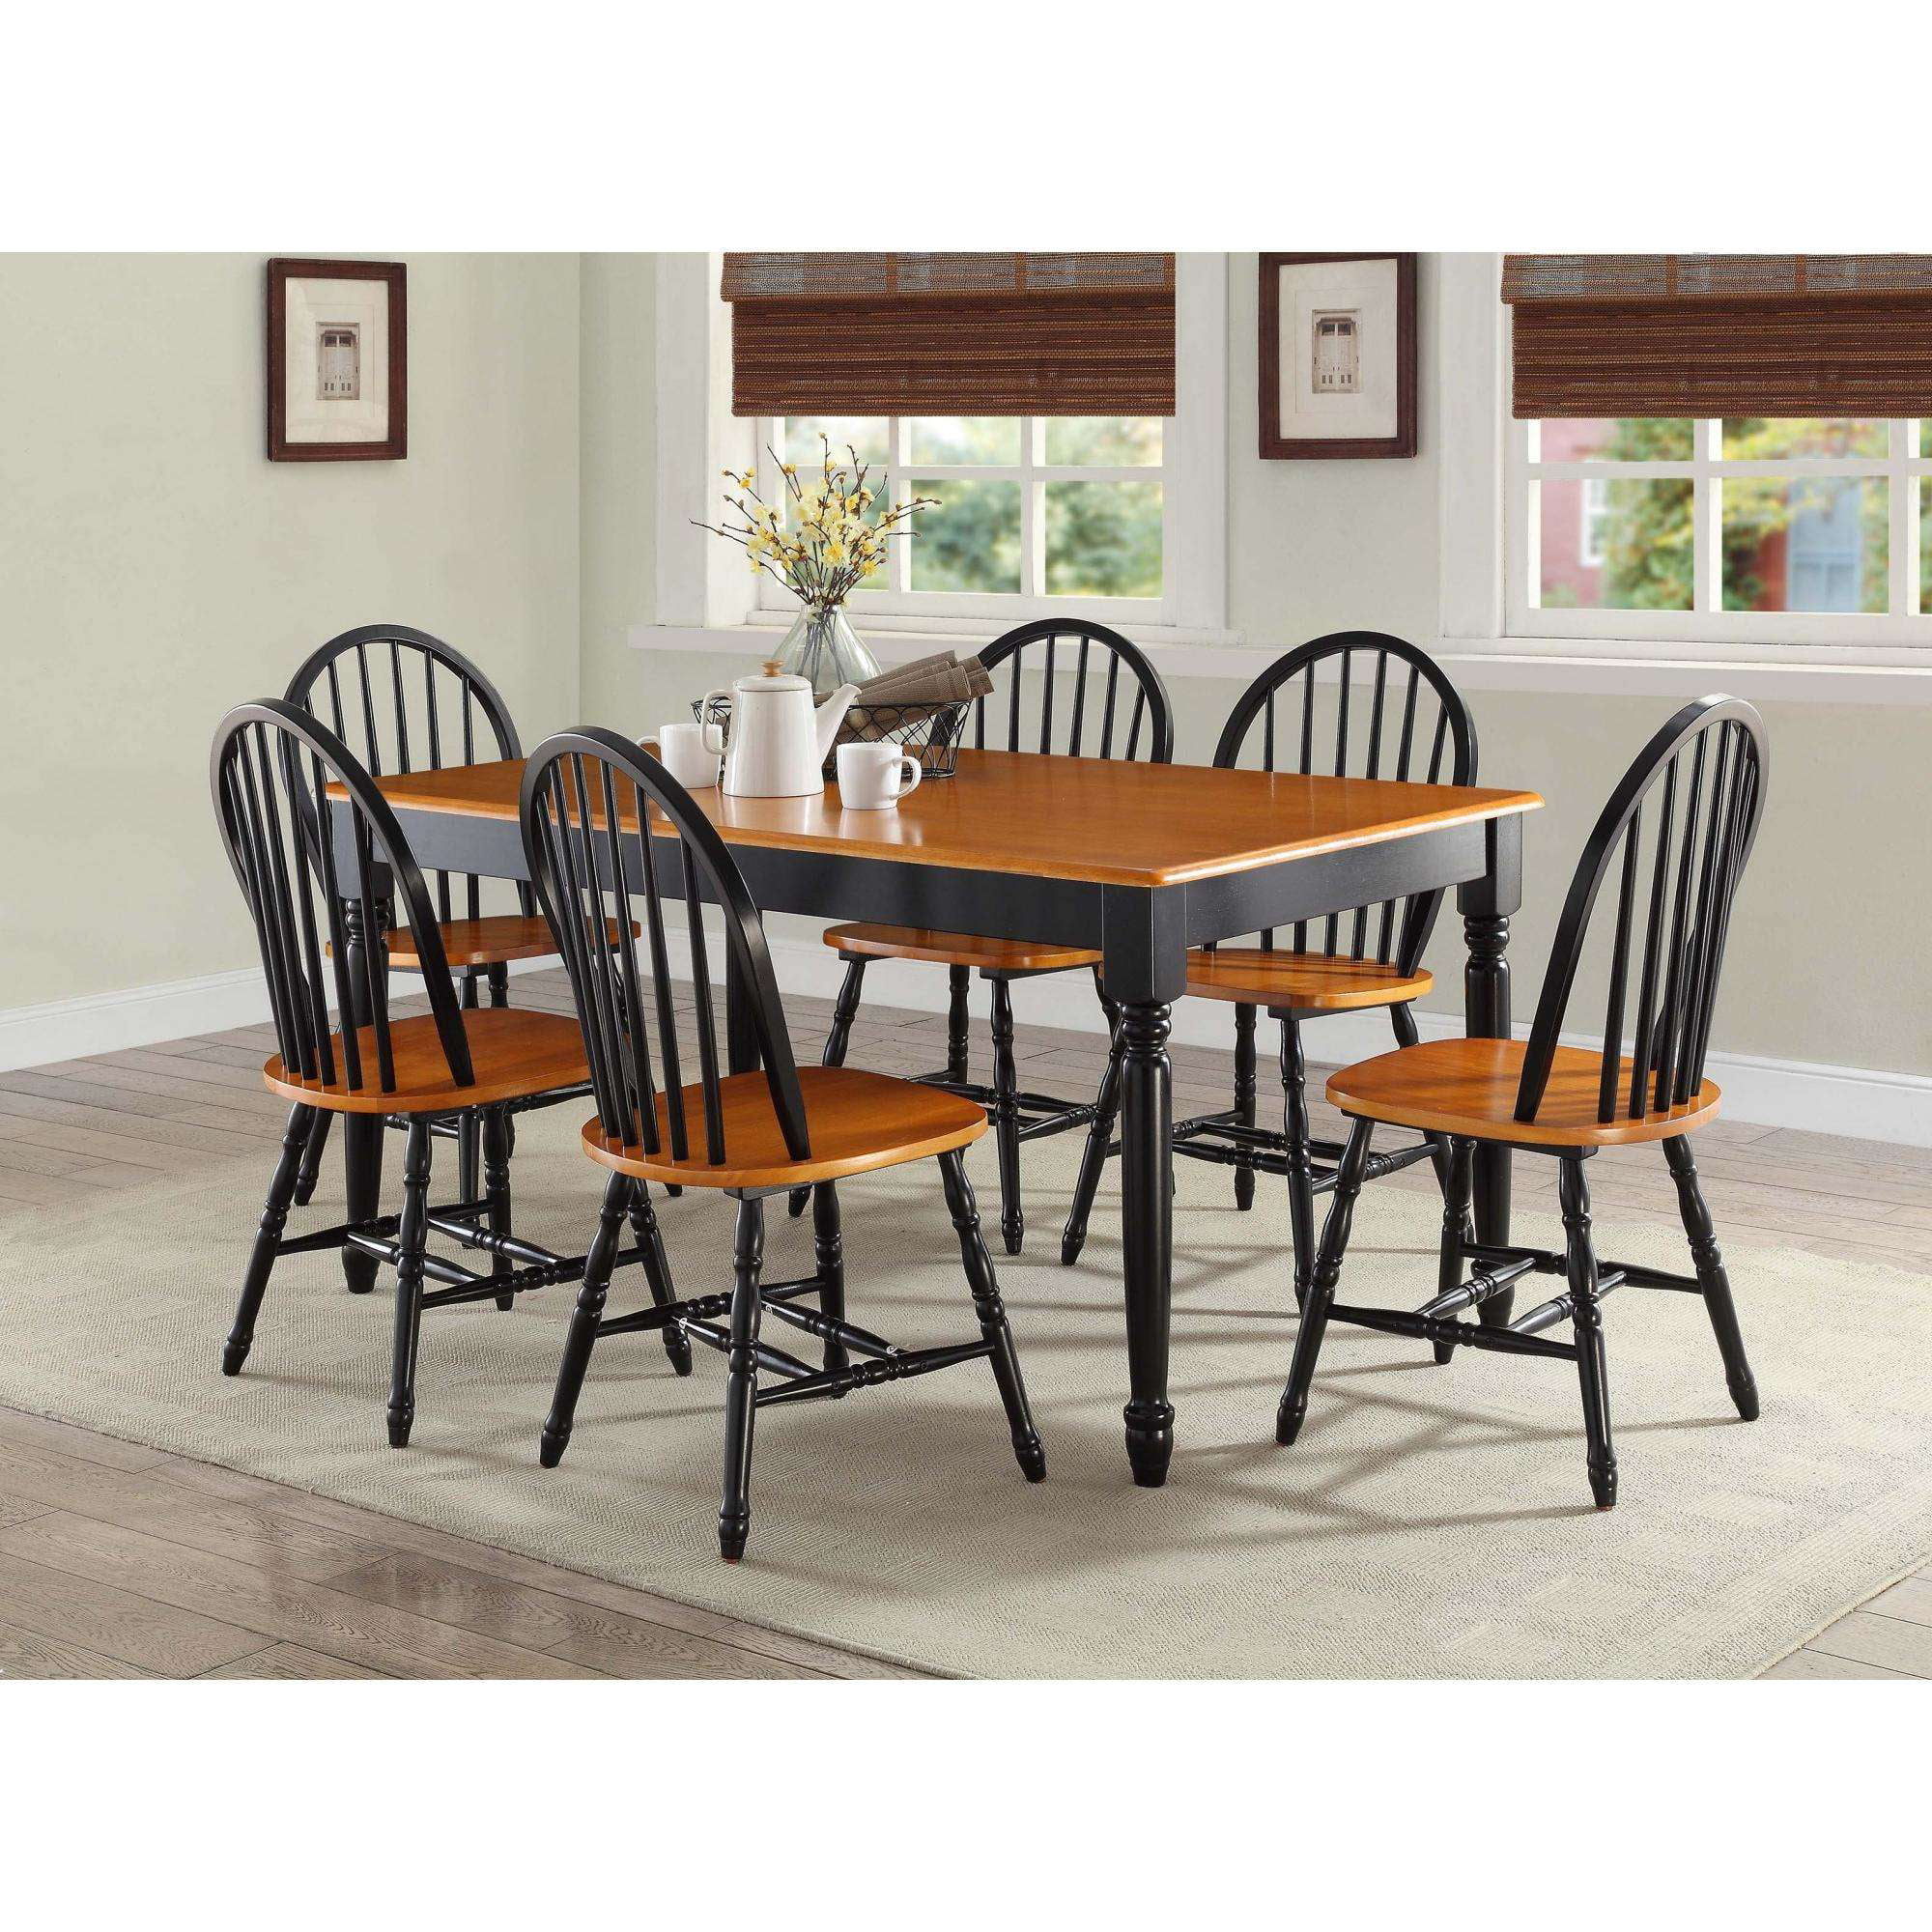 Windsor Chairs Black Details About Windsor Chairs Set 2 Piece Black Oak Turned Wood Legs Solid Seat Home Furniture